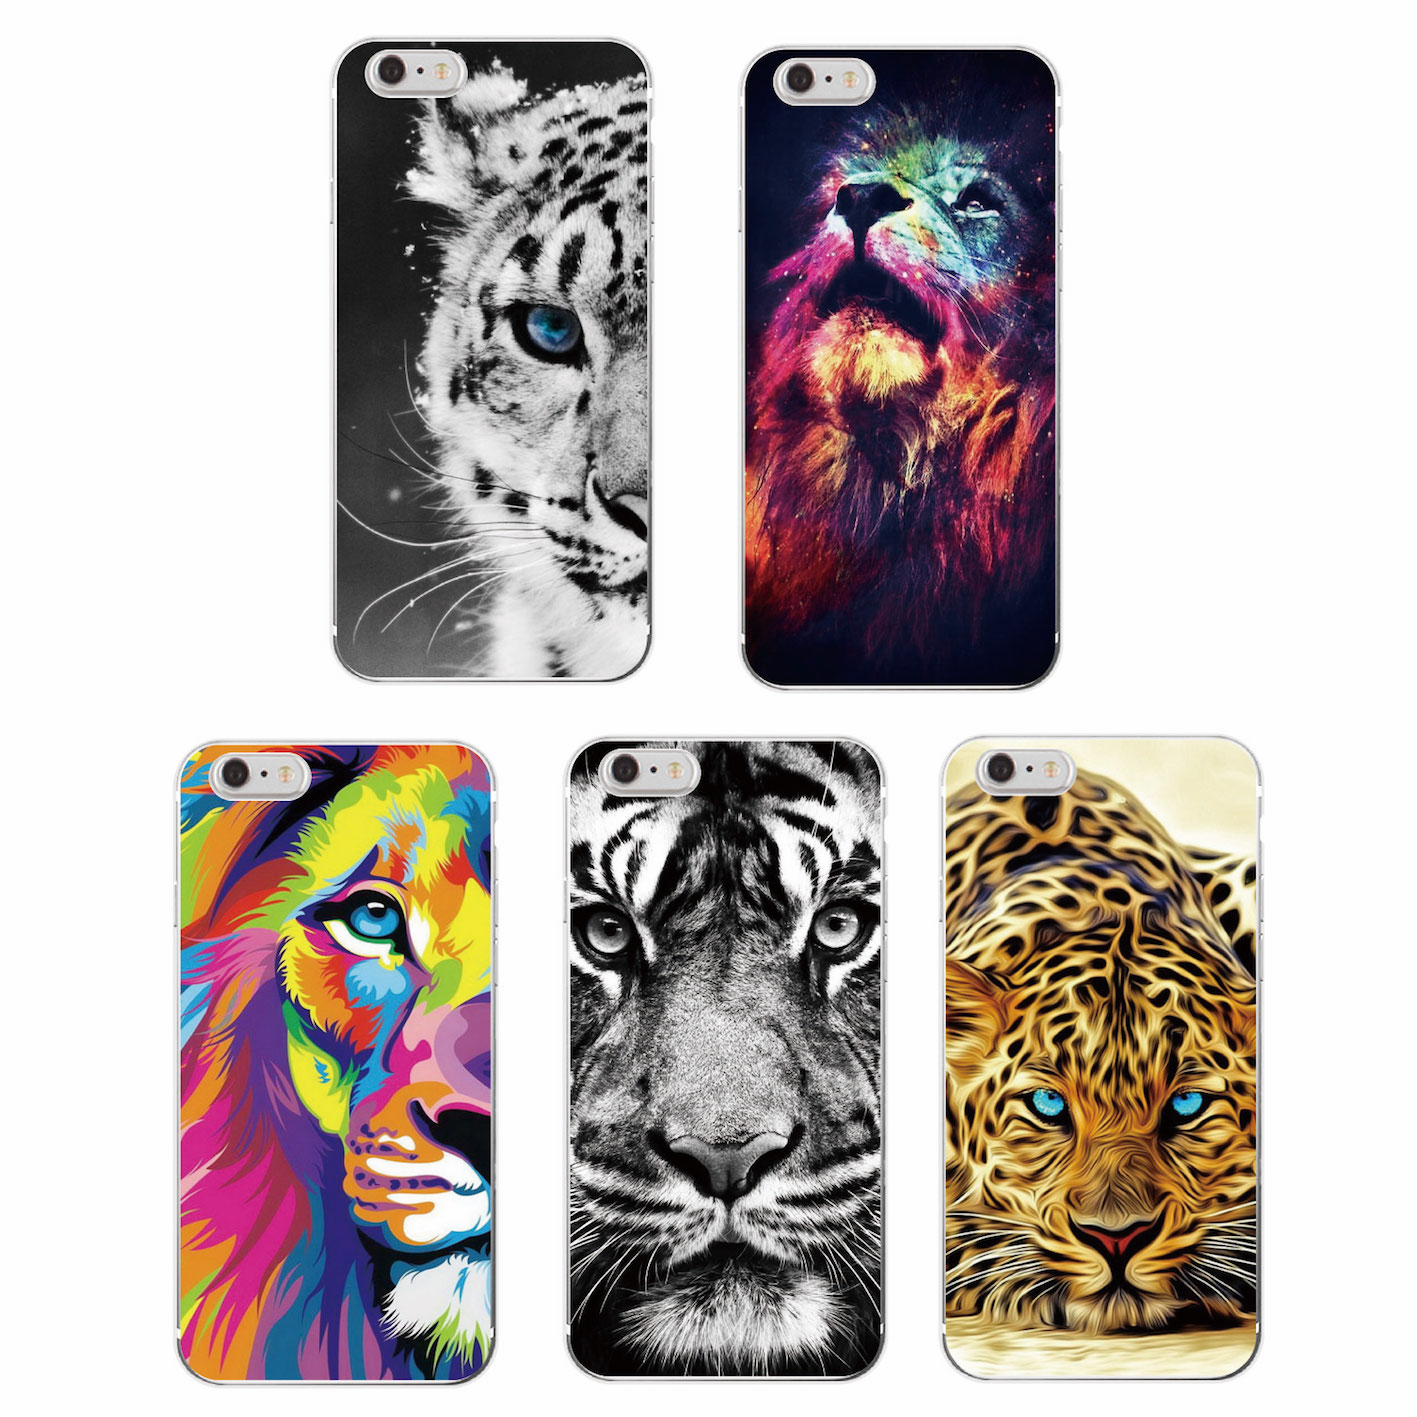 Fashion Lion Tiger panther Leopard Soft TPU Case Coque Fundas For iPhone 7 7Plus 6 6S 6Plus 5 5S 8 8Plus X SAMSUNG GALSXY S8 S8P